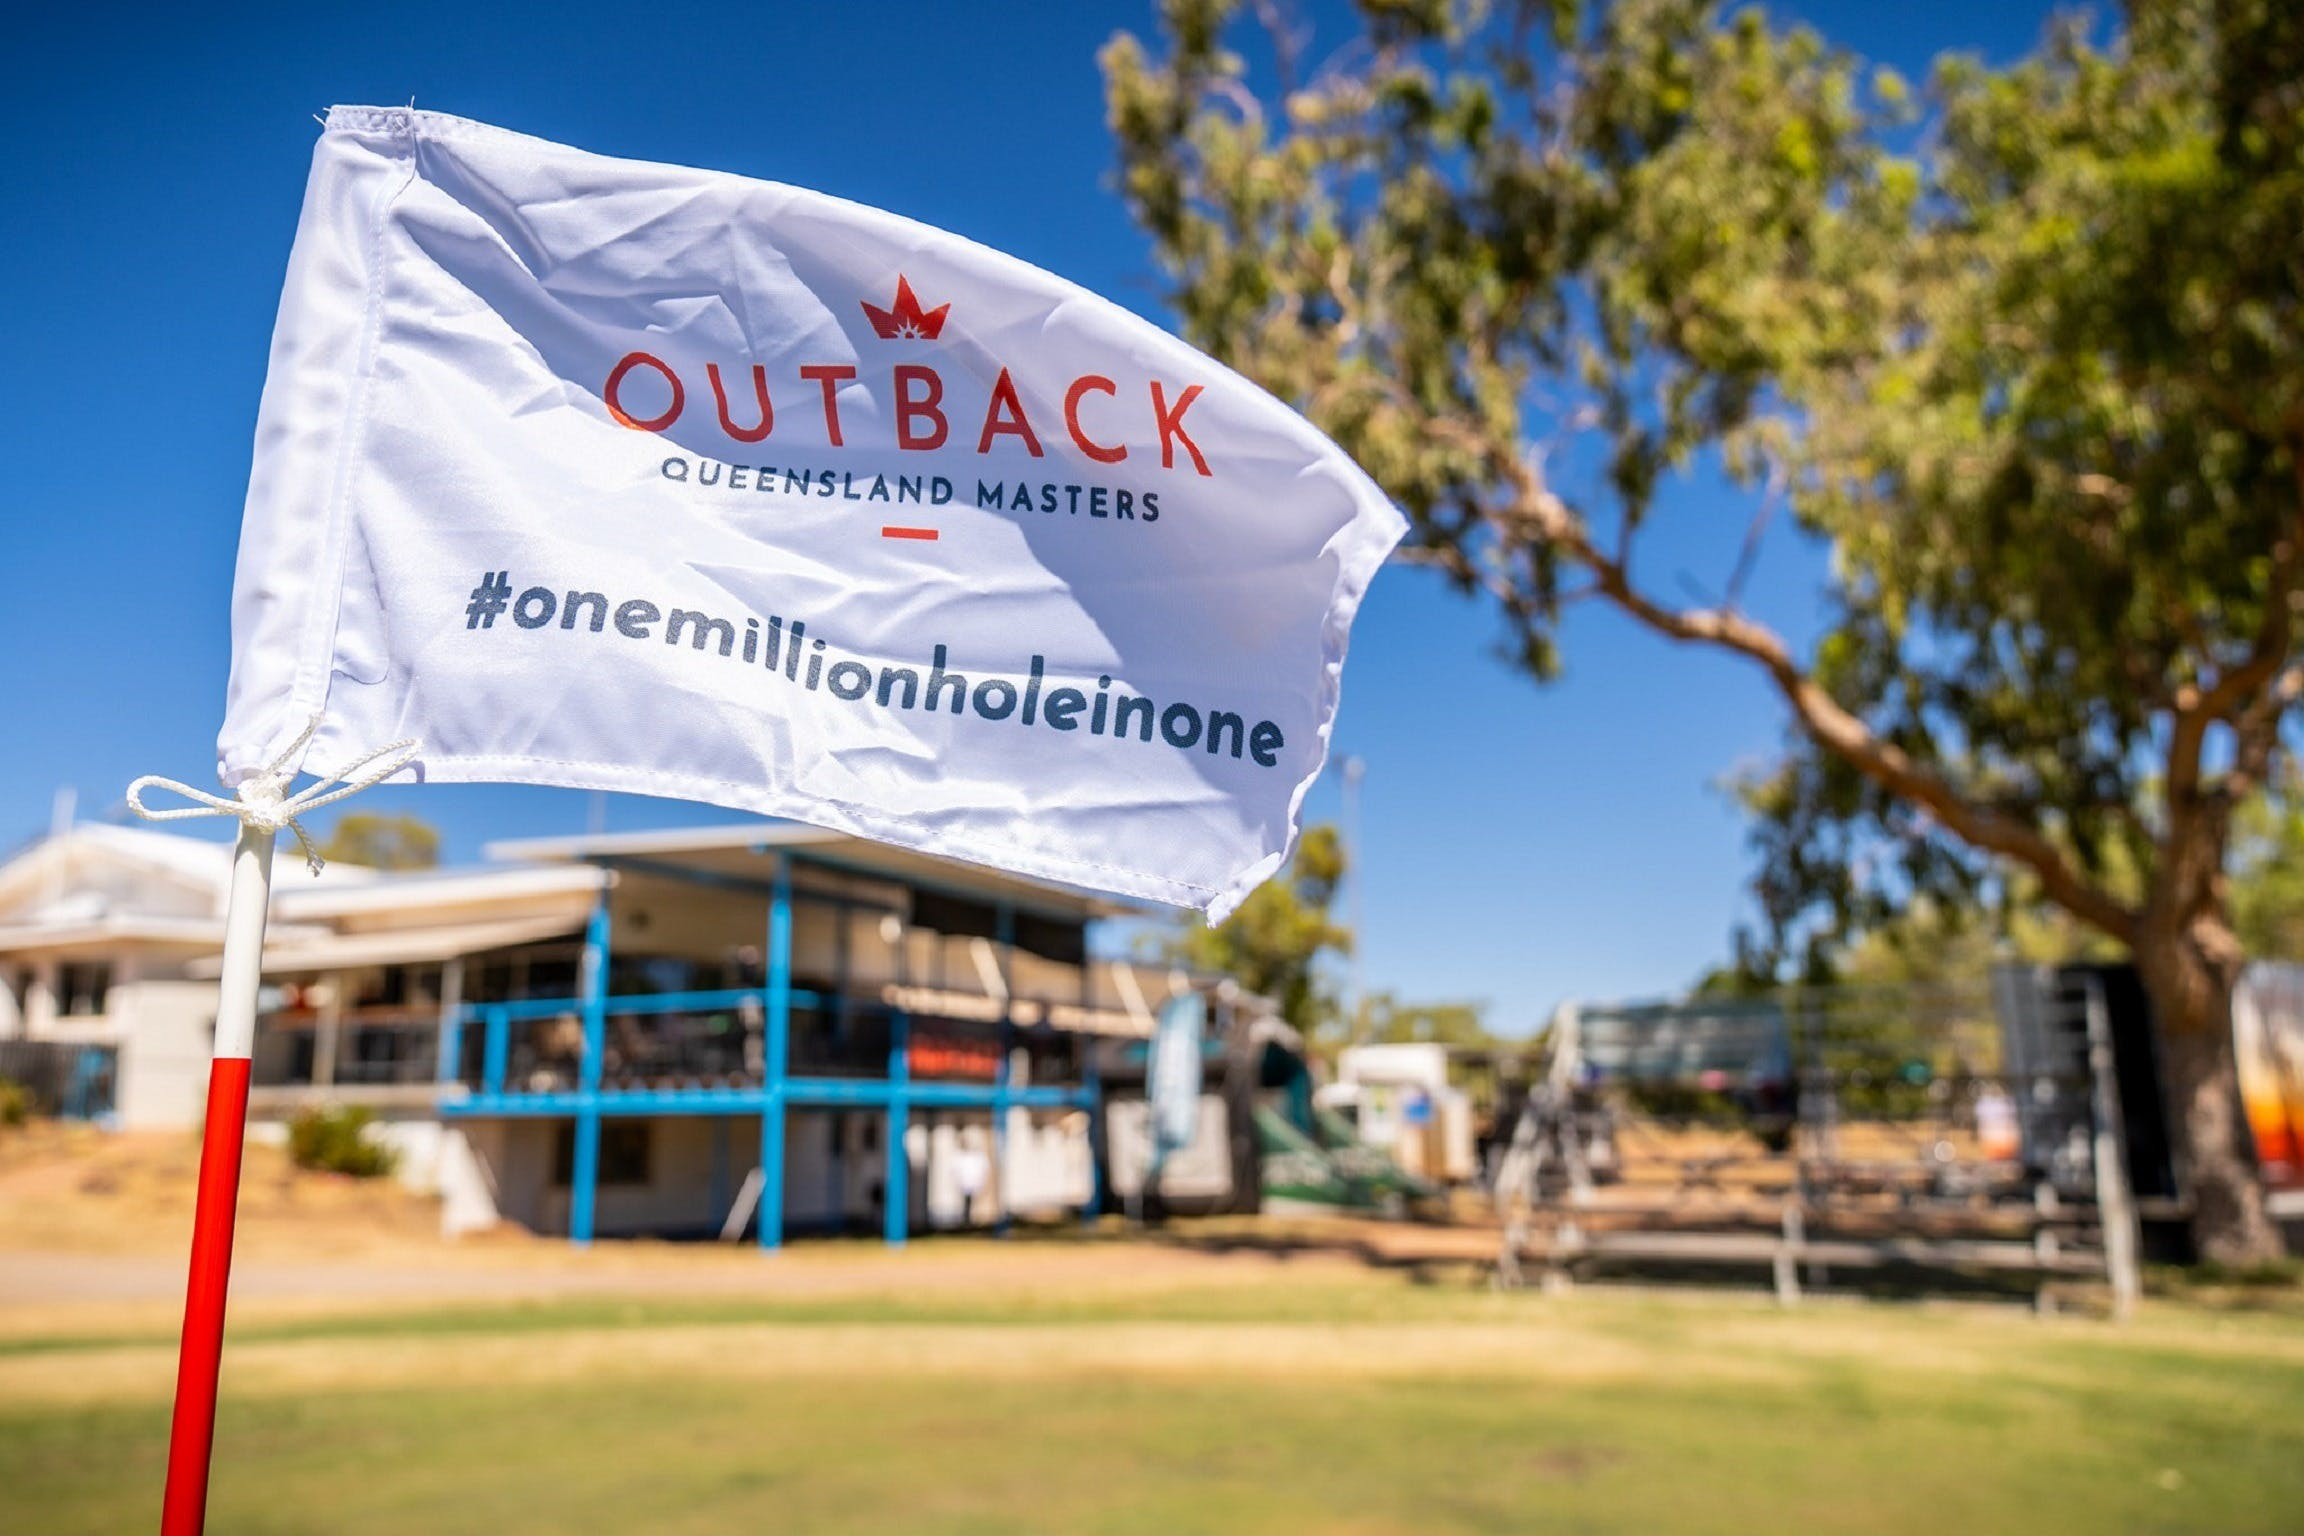 Outback Queensland Masters Charleville Leg 2021 - Accommodation NSW